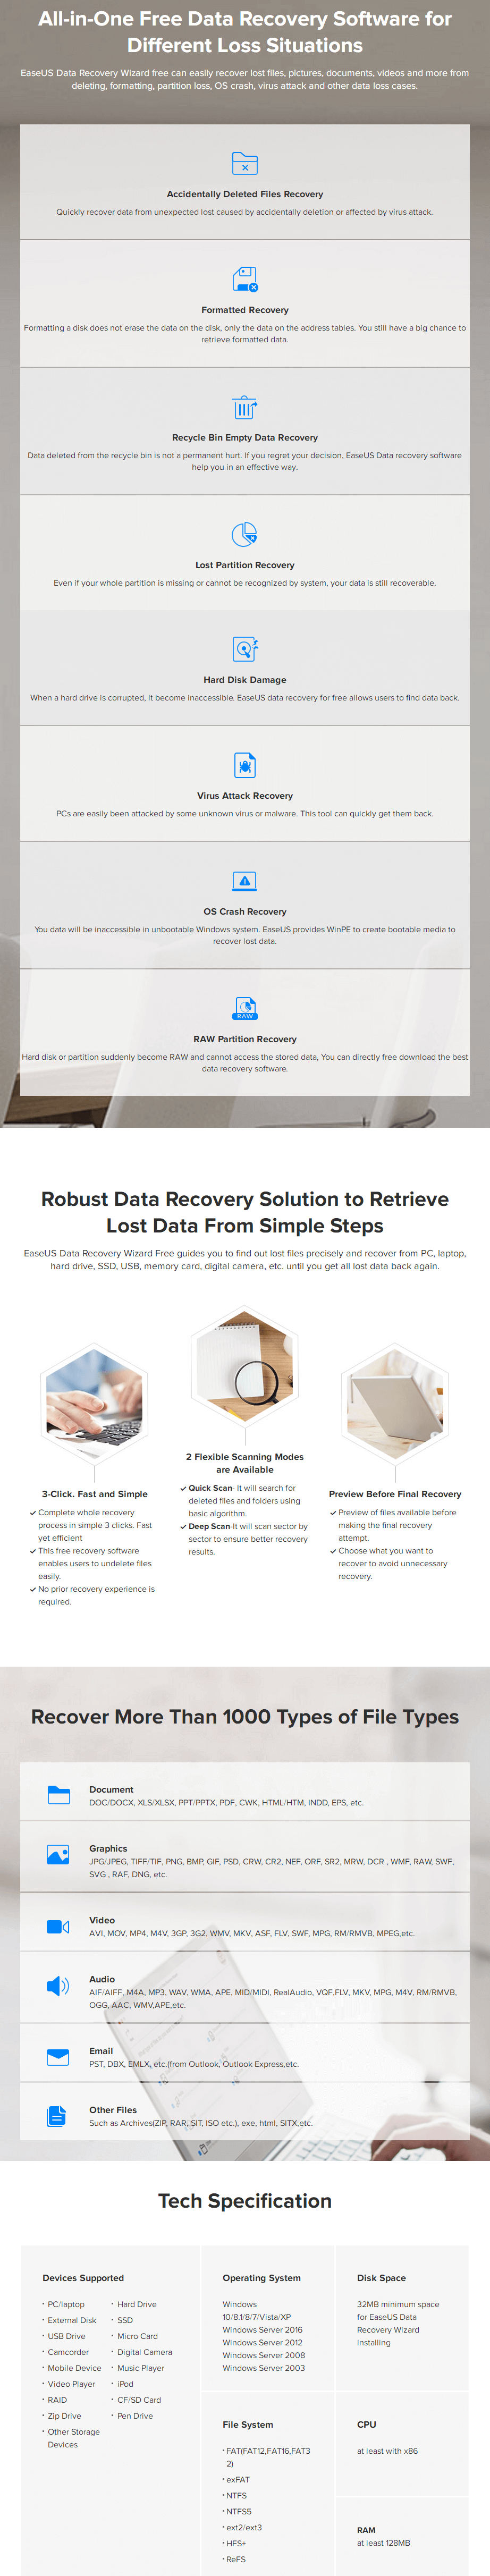 EaseUS Data Recovery Wizard Free Feature